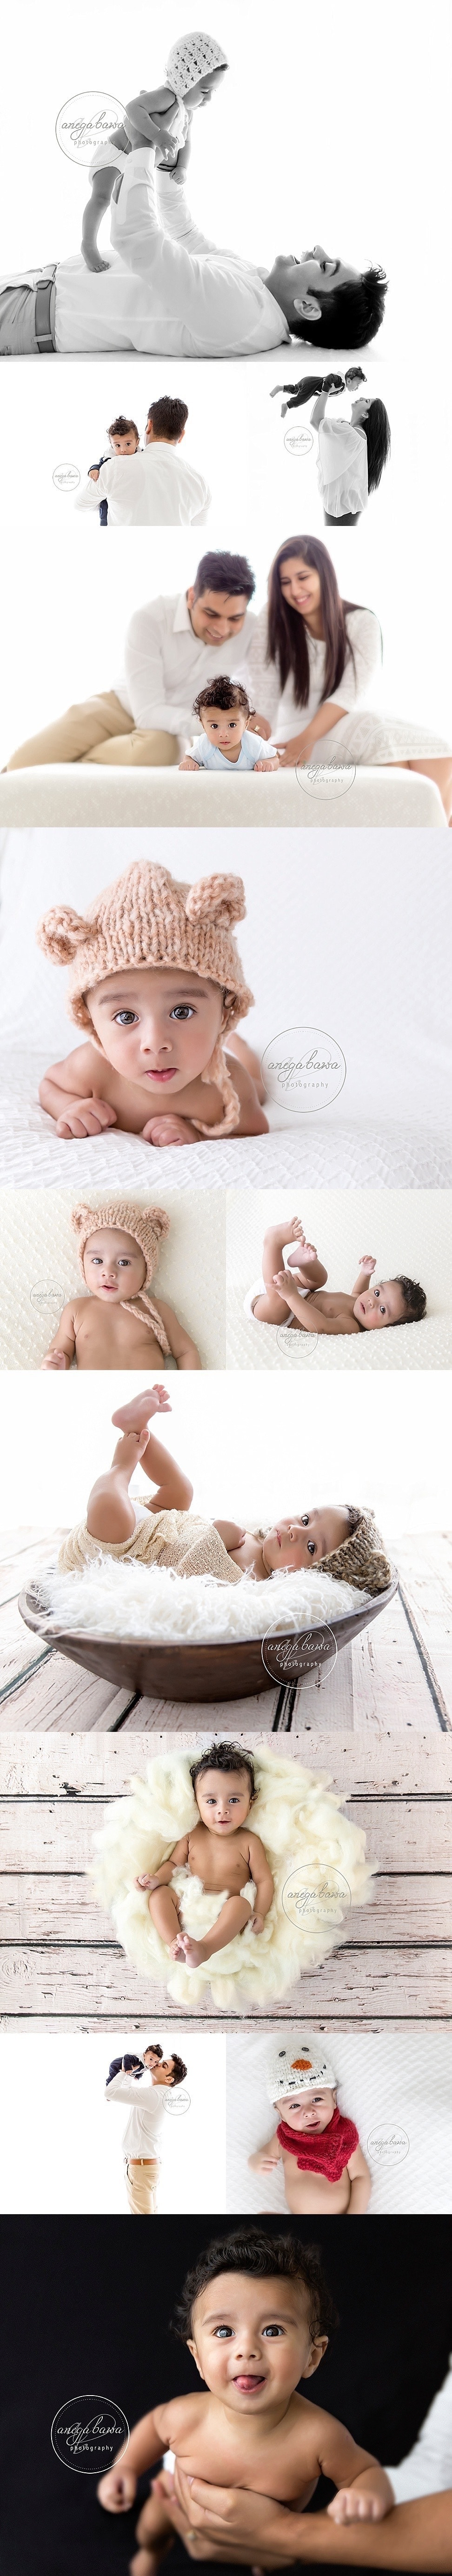 Baby Photographer in Delhi-Gurgaon-Noida - Session of 4 months boy